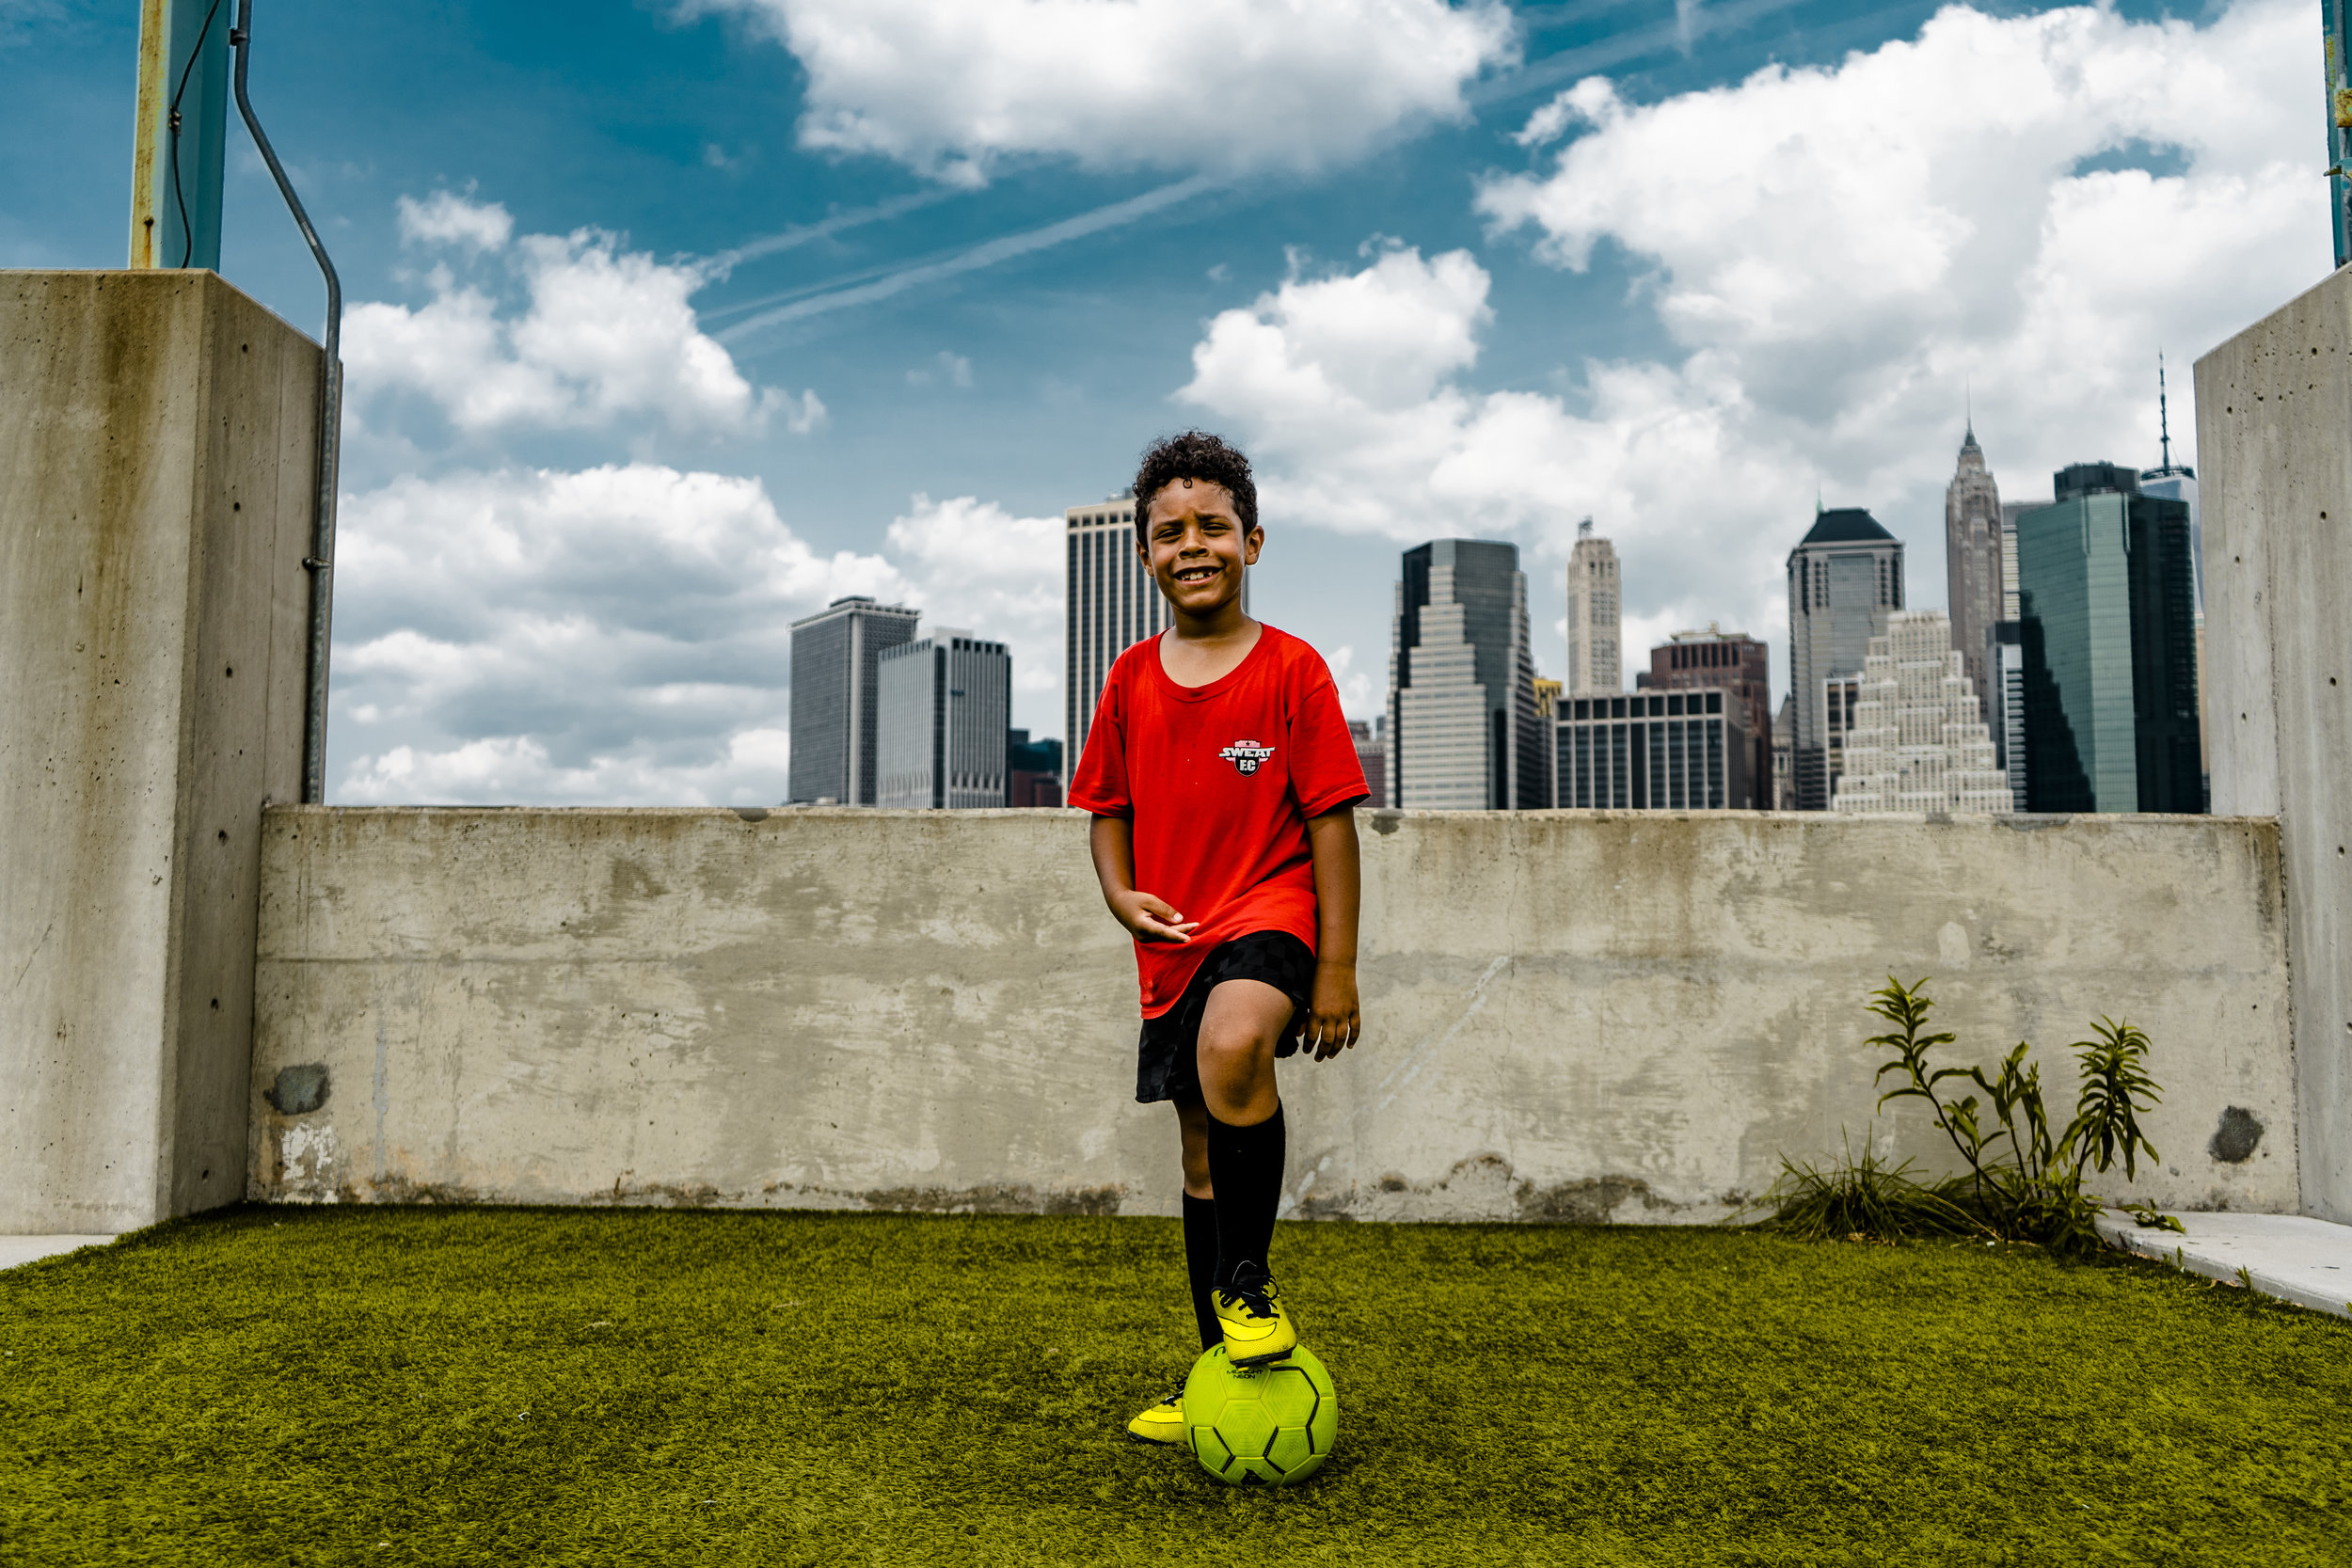 DEAN ST AGES 5-9 - Fall 2019 soccer school classes are now open. Our Dean Street soccer classes will take place on Monday's and Thursday's at 3:00 PM.